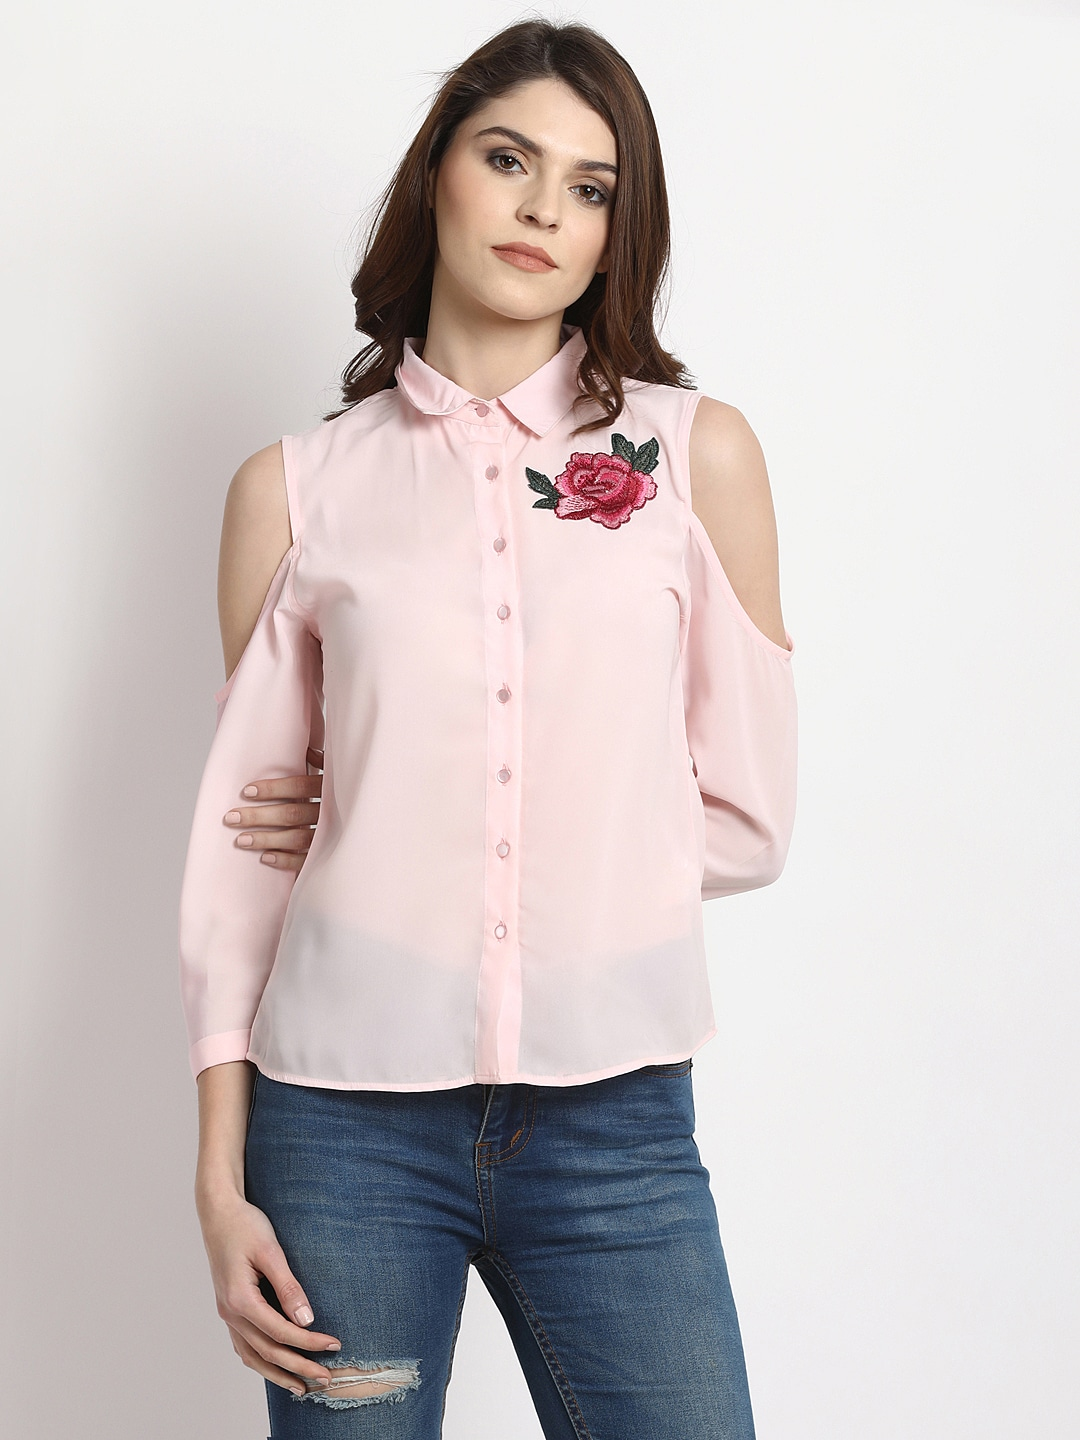 a967d33c857e8 Cold Shoulder Tops - Buy Cold Shoulder Tops for Women Online - Myntra